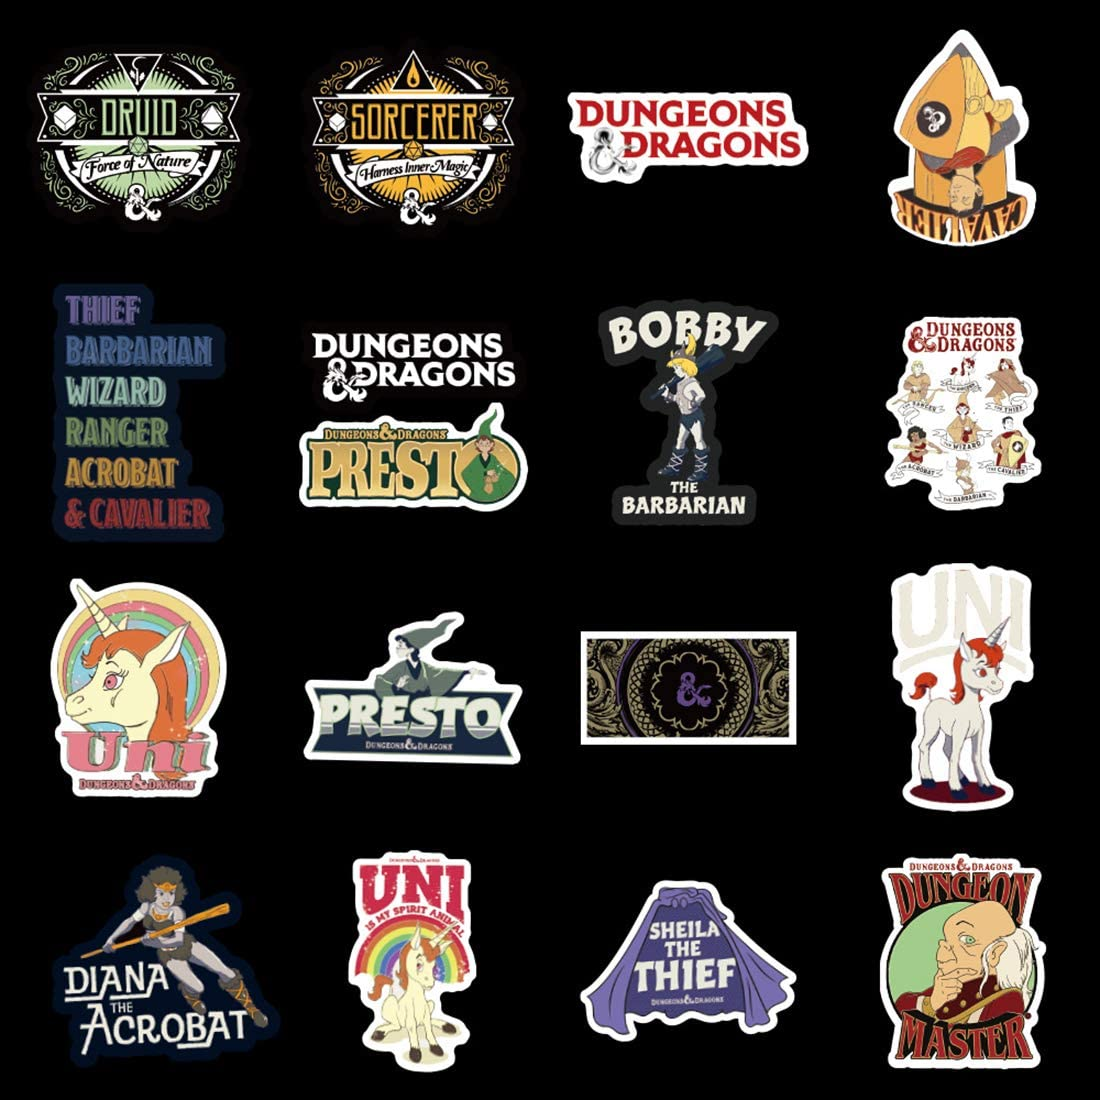 No-Duplicate Sticker Pack HJKT SEBADA 50Pcs Dungeons /& Dragons Stickers for Laptop Motorcycle Bicycle Skateboard Luggage Decal Graffiti Patches